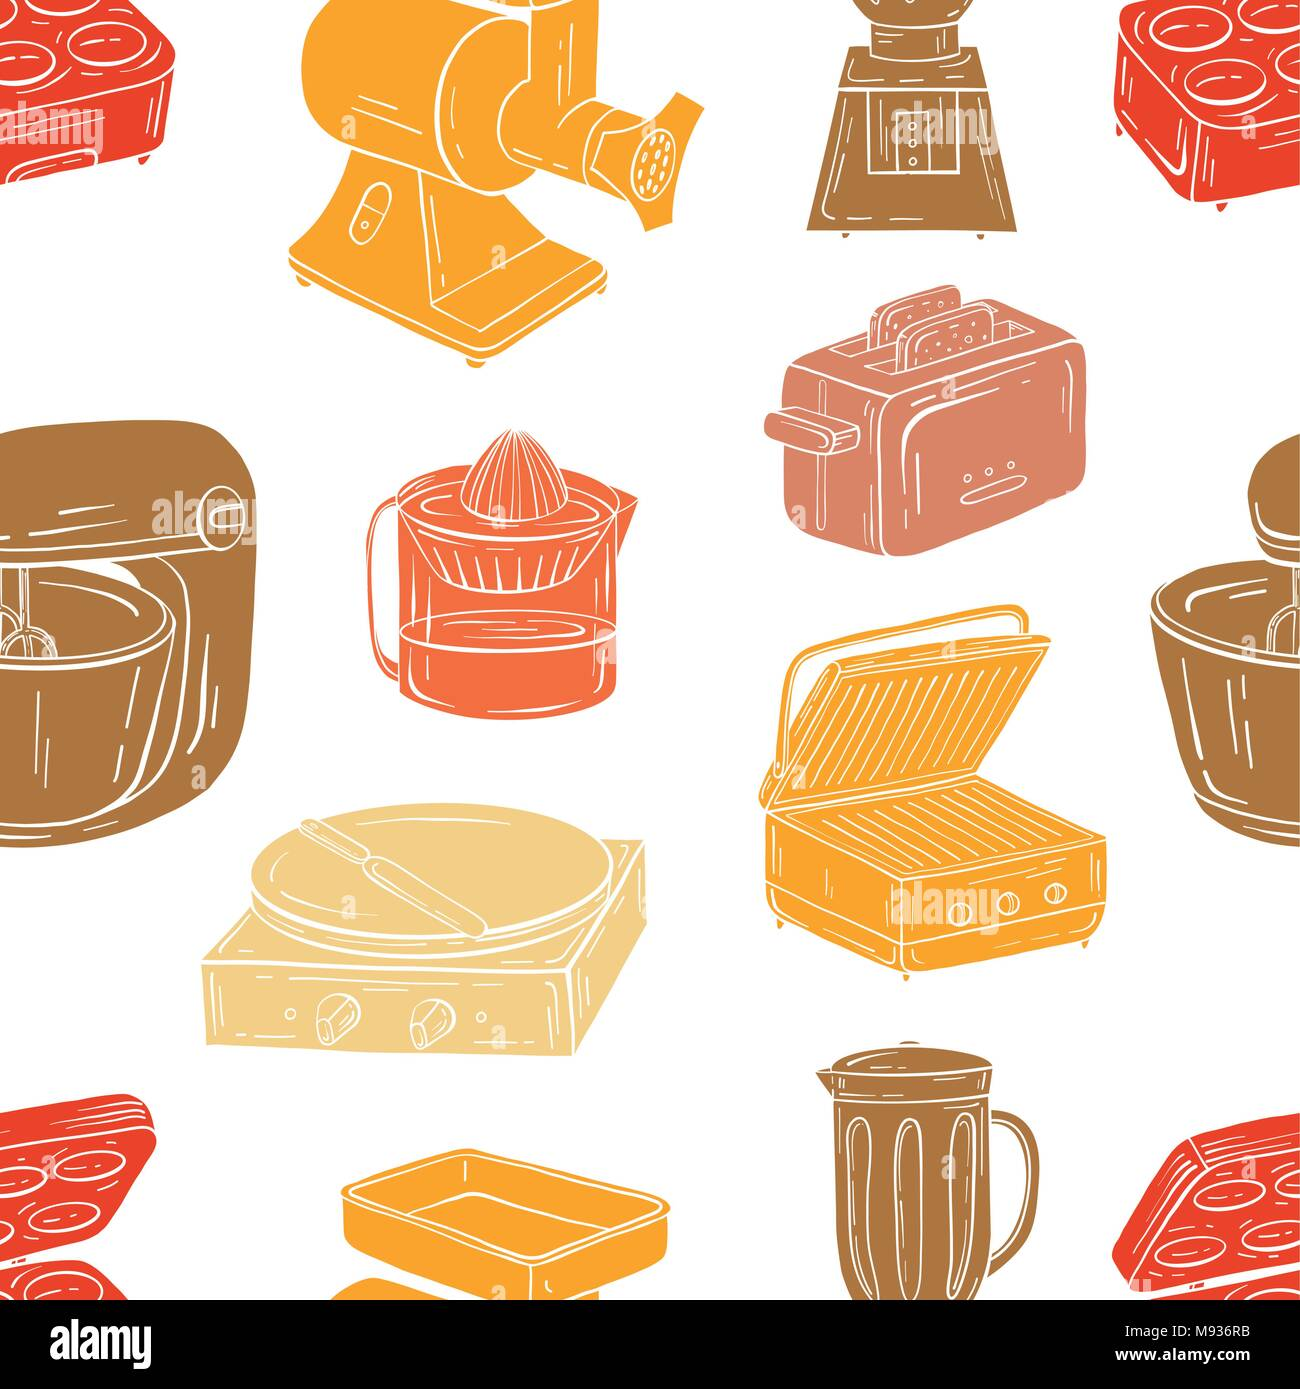 Vector illustration of seamless pattern. Household appliances fo - Stock Image